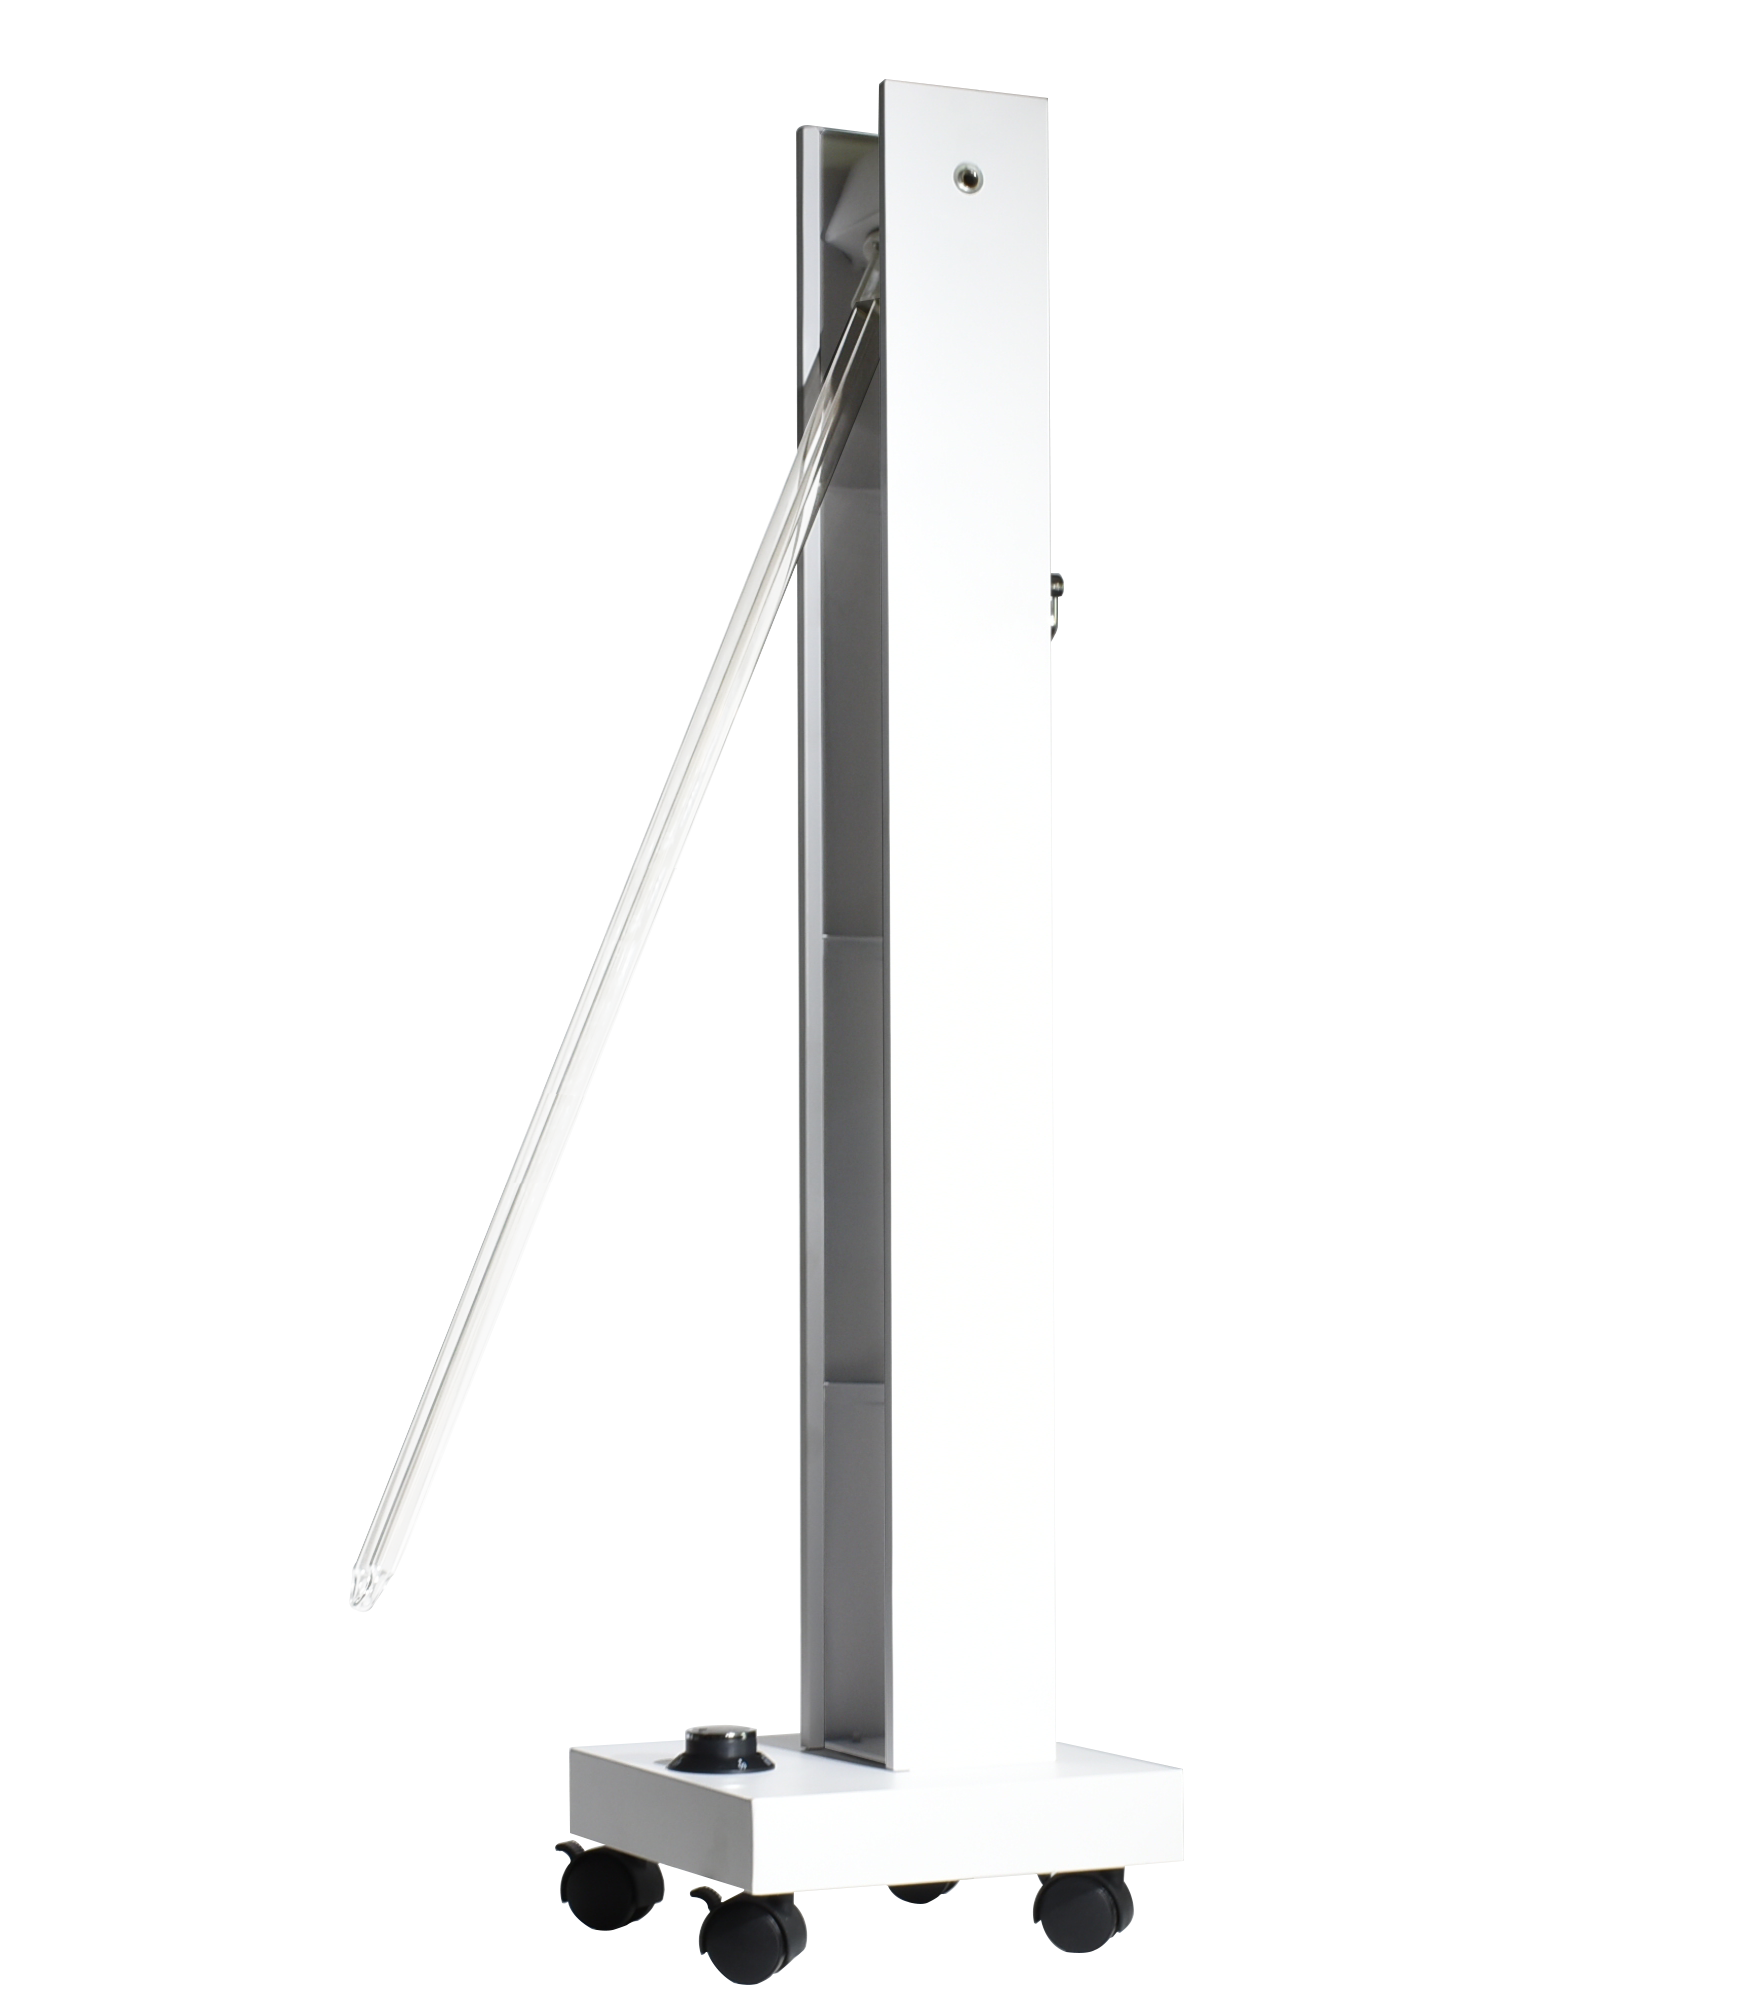 Lamp UV 150W UVC Trolley 180 Degree Adjustable With OR Without Ozone UV Sterilizer Lamp